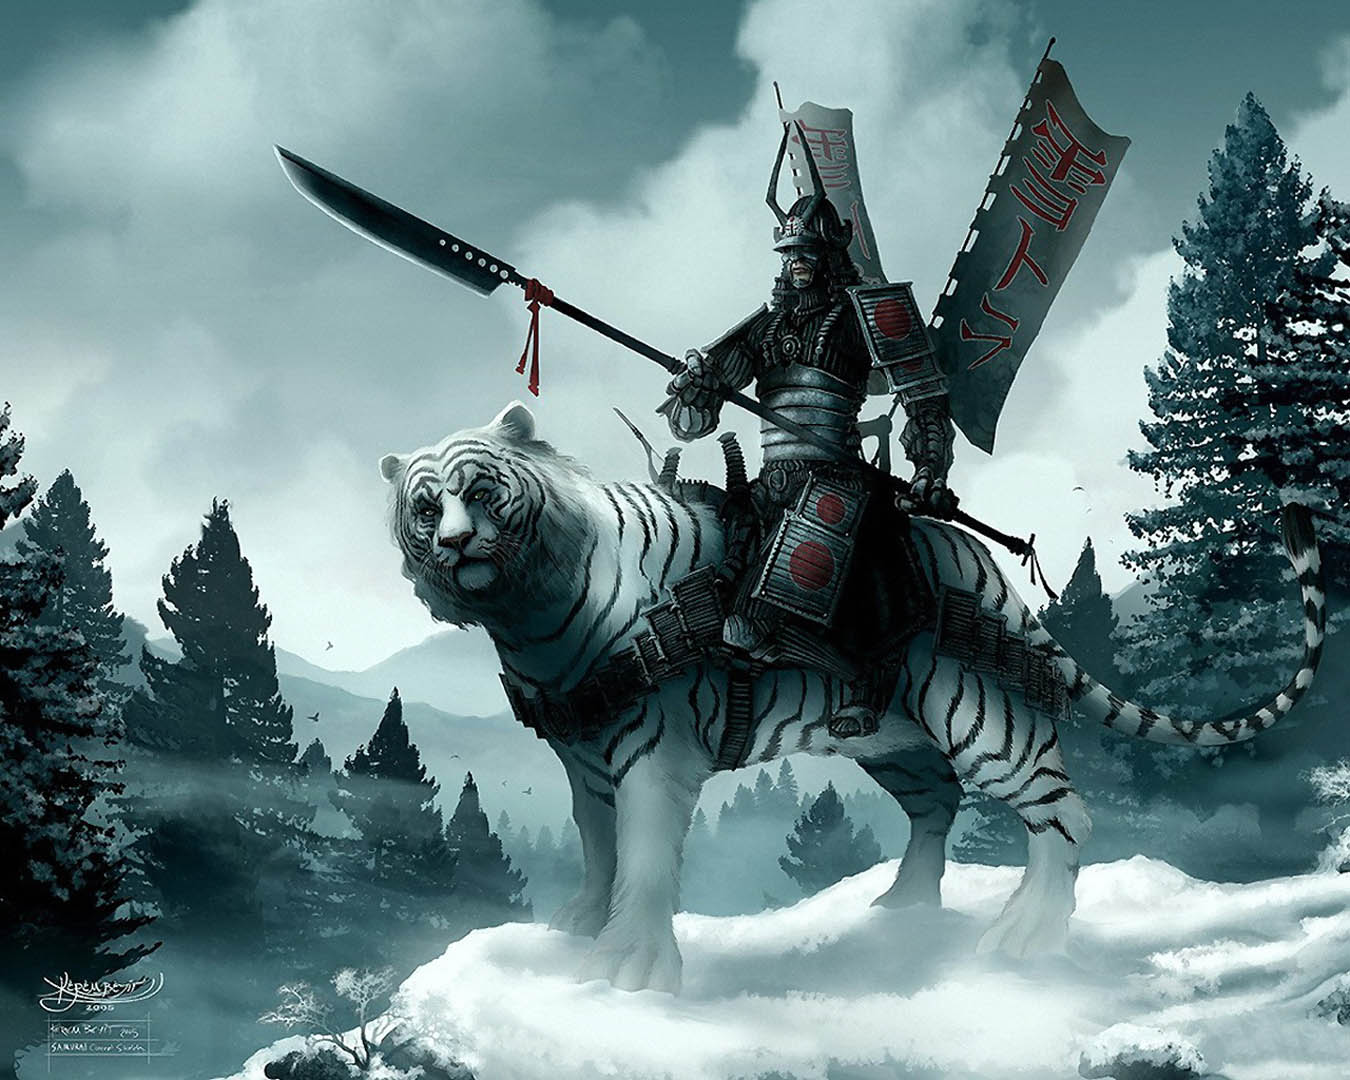 Japanese Warrior Mounted On Snow Tiger - Fantasy Monsters Wallpaper ...